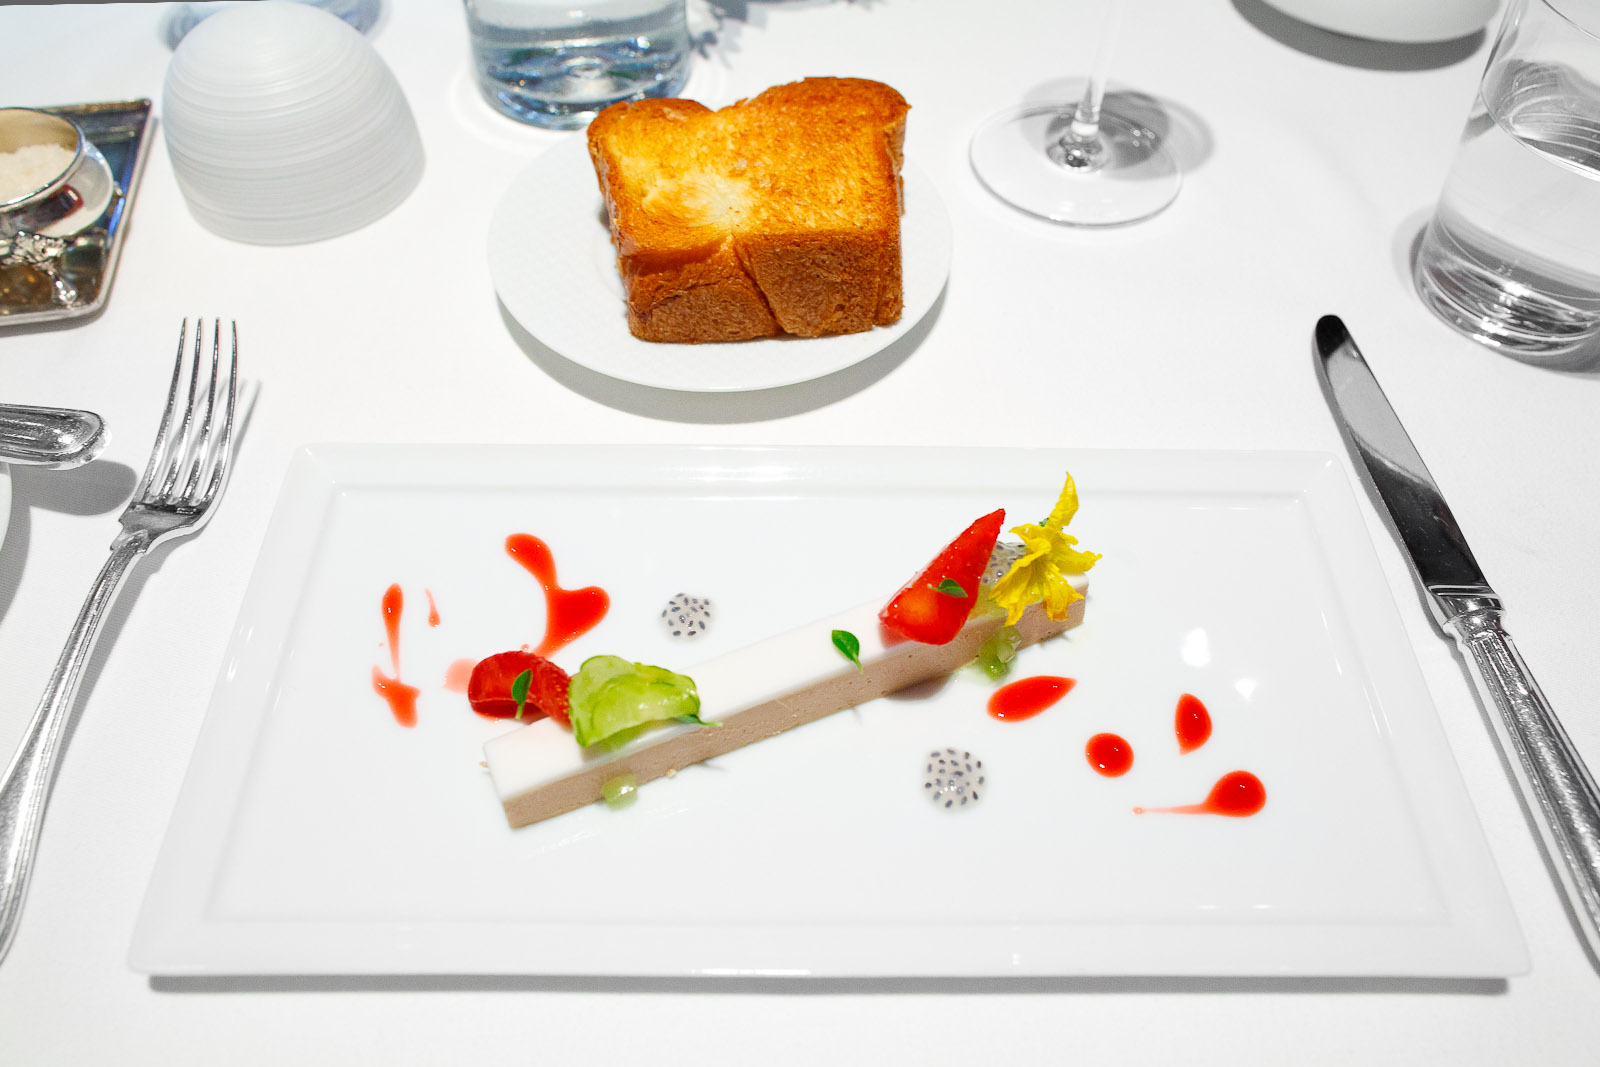 """3rd Course - Moulard Duck Foie Gras """"En Terrine,"""" French Laundry Garden Strawberries, Cucumber, Young Coconut and Greek Basil"""